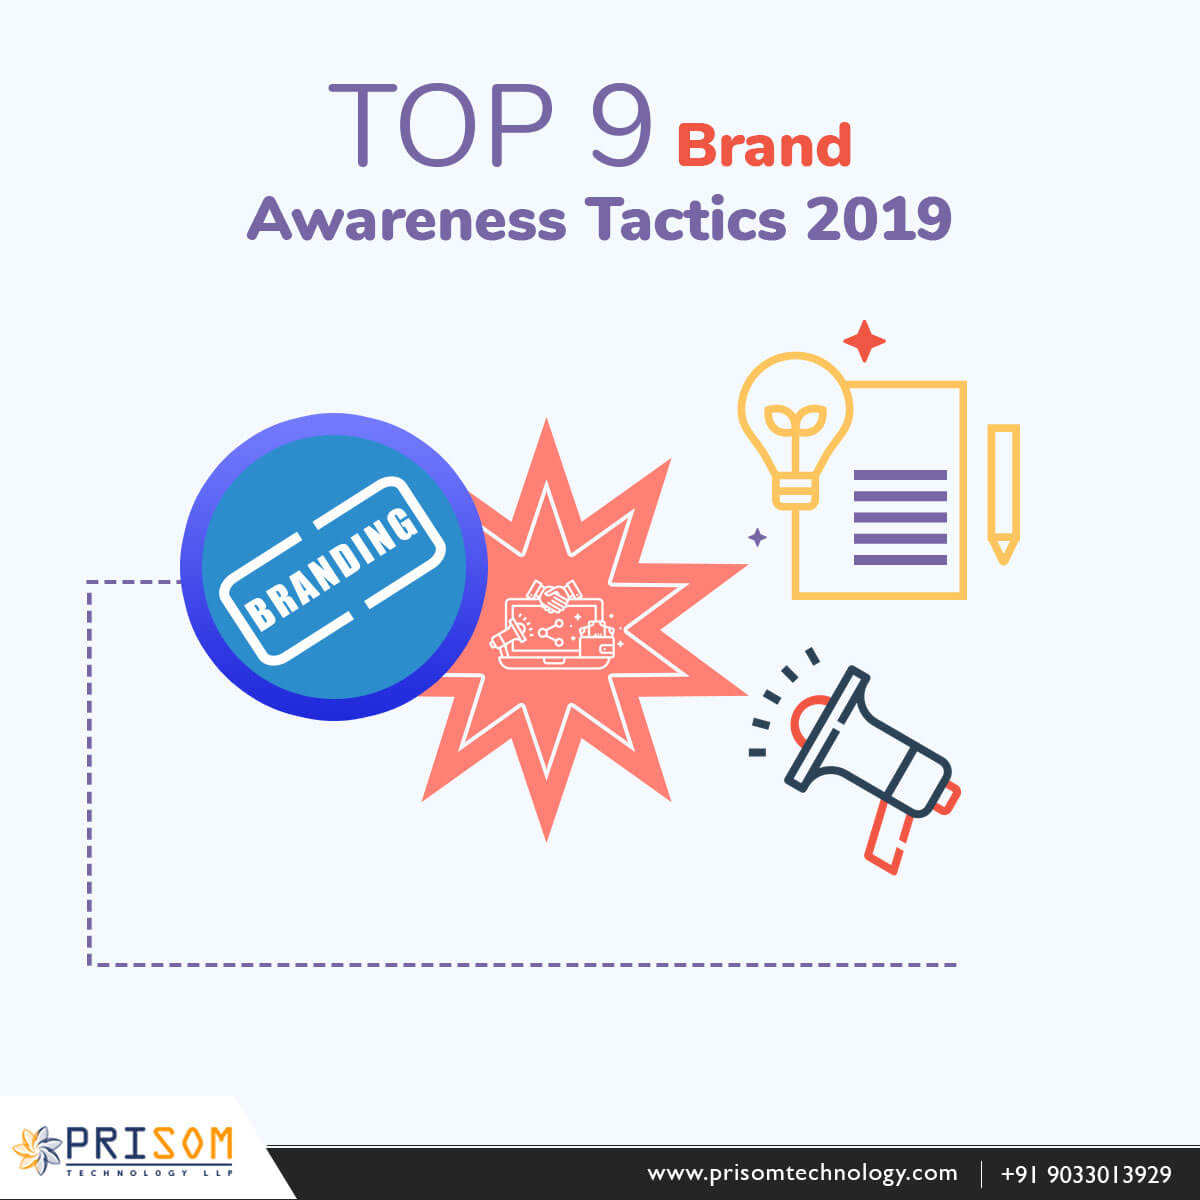 Top 9 Brand Awareness Tactics 2019